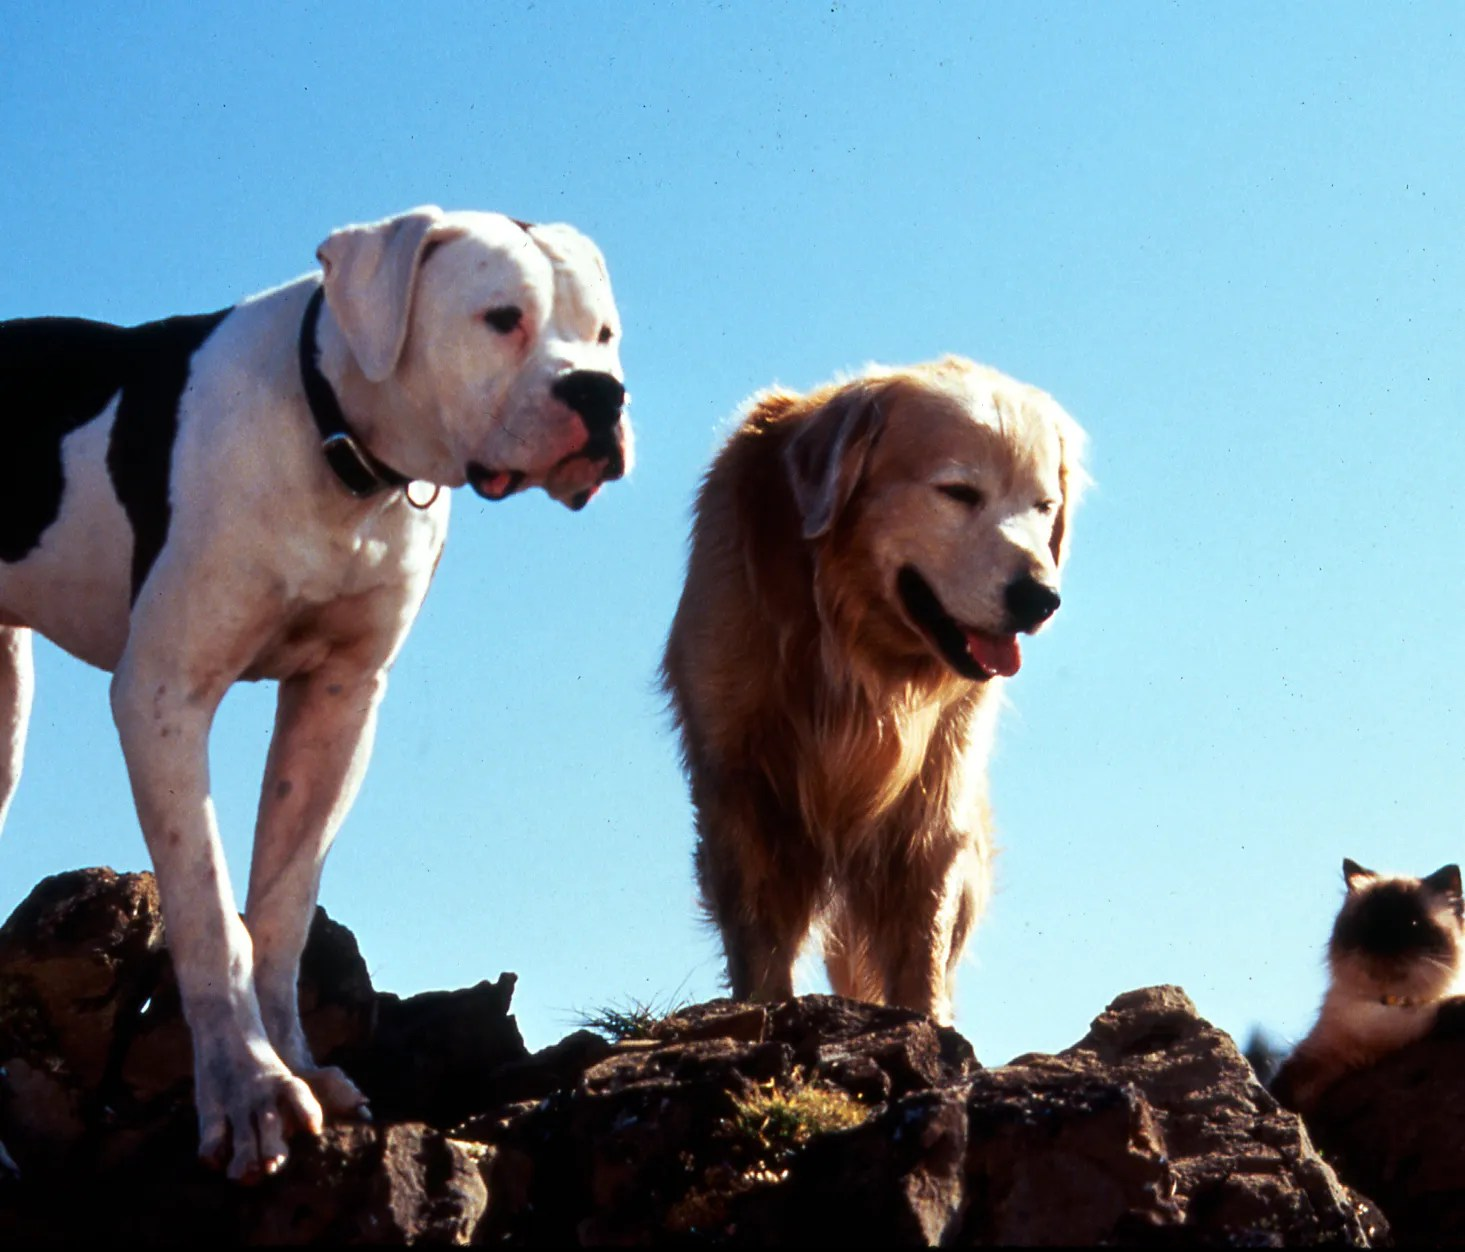 Chance and Shadow from Homeward Bound